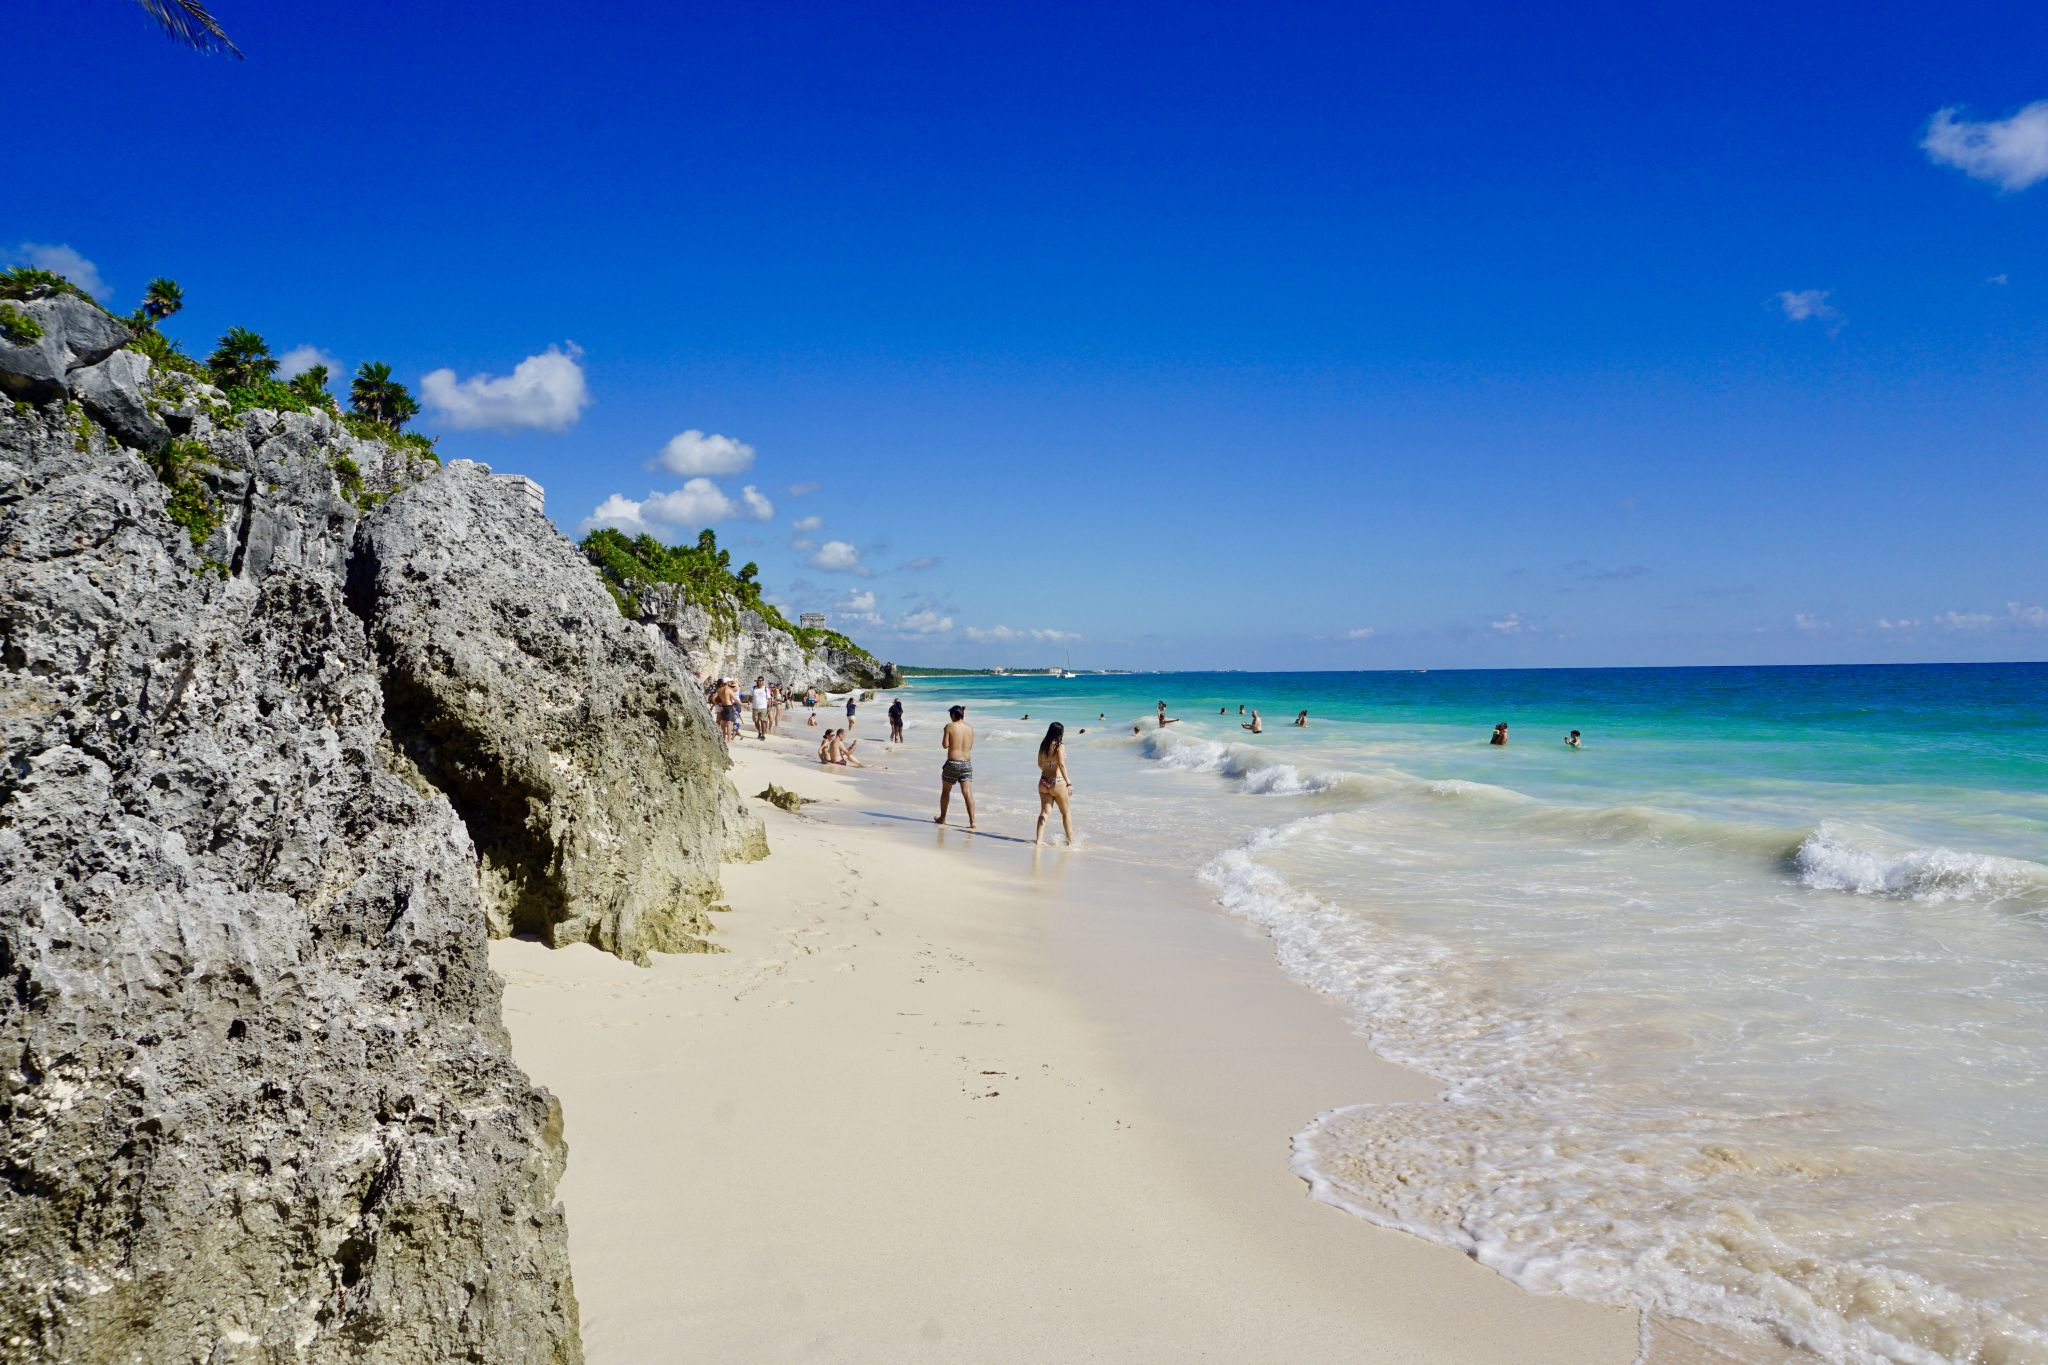 The Beach by the Tulum Ruins is Beautiful